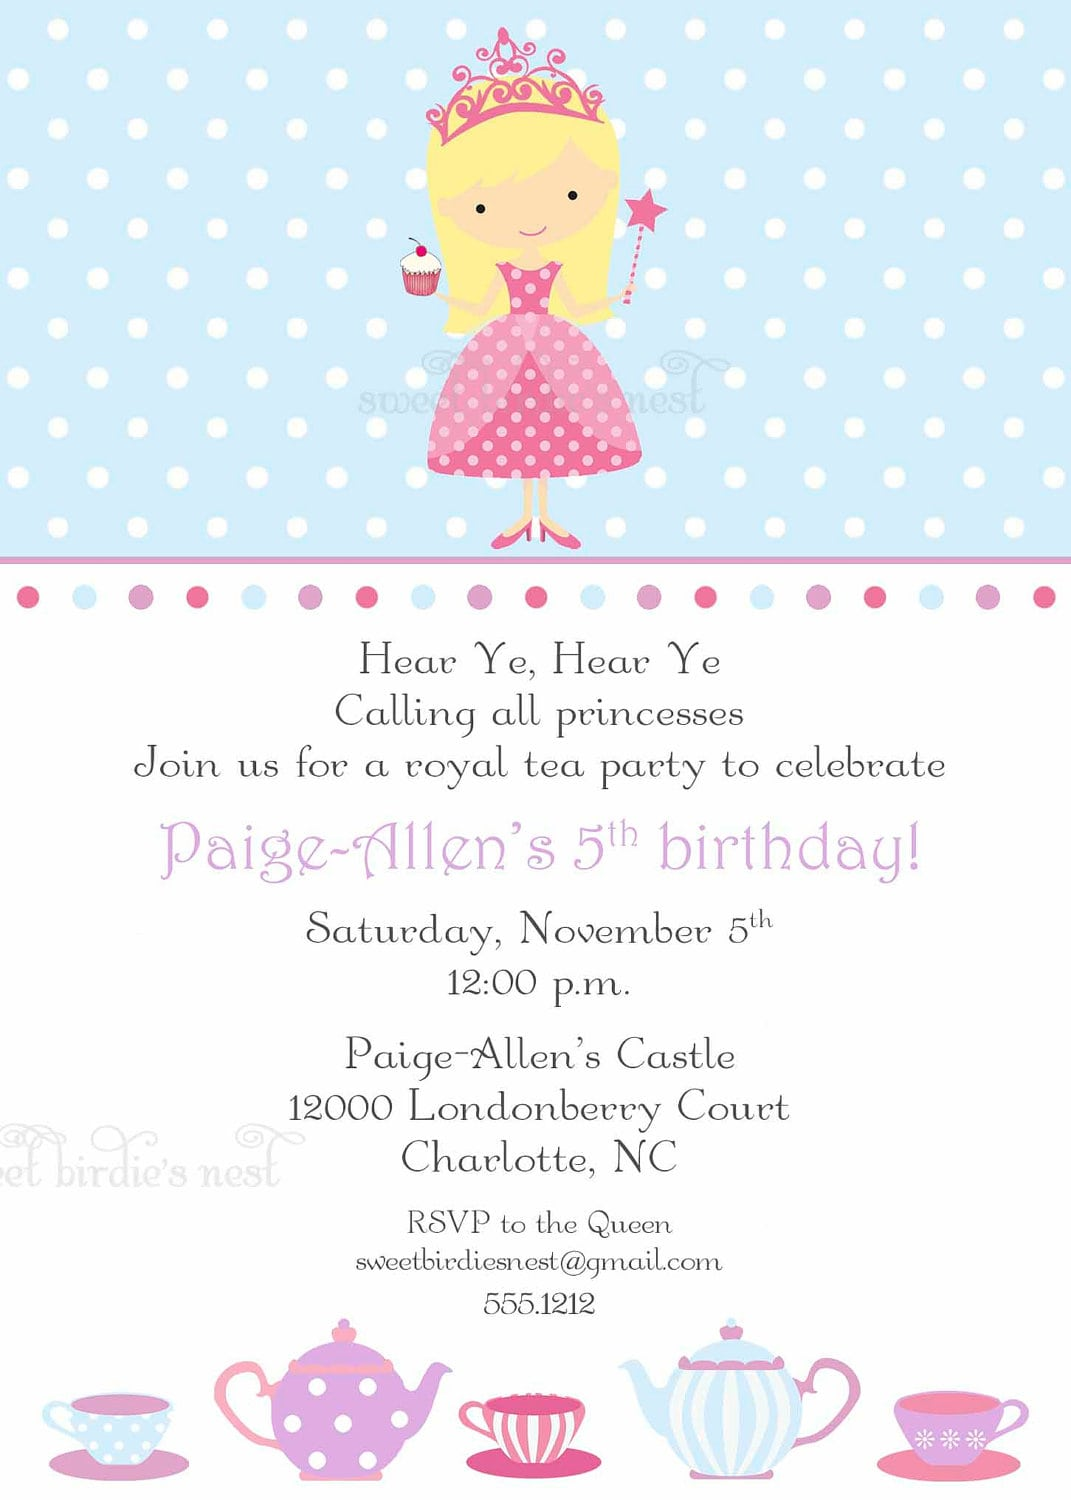 Princess birthday party invitation wording mickey mouse princess birthday party invitation wording beauty and the beast invitation princess party invitation wording ukrobstep com stopboris Image collections